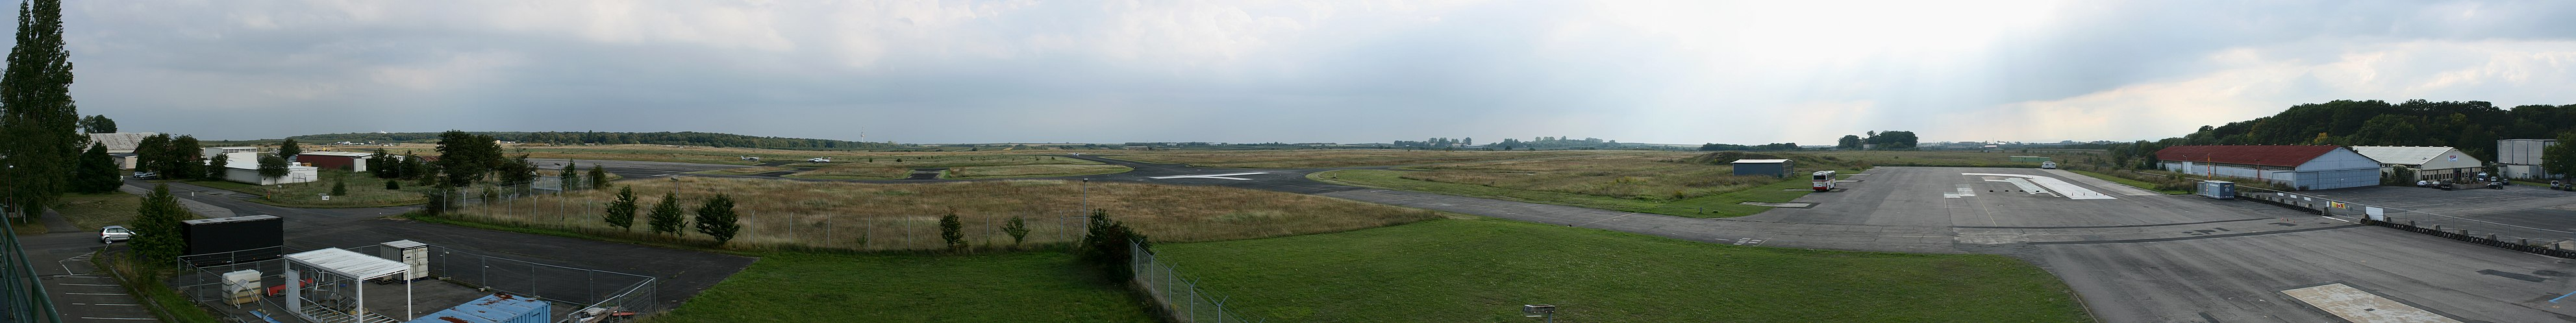 Airfield Mainz Finthen partial Panorama.jpg